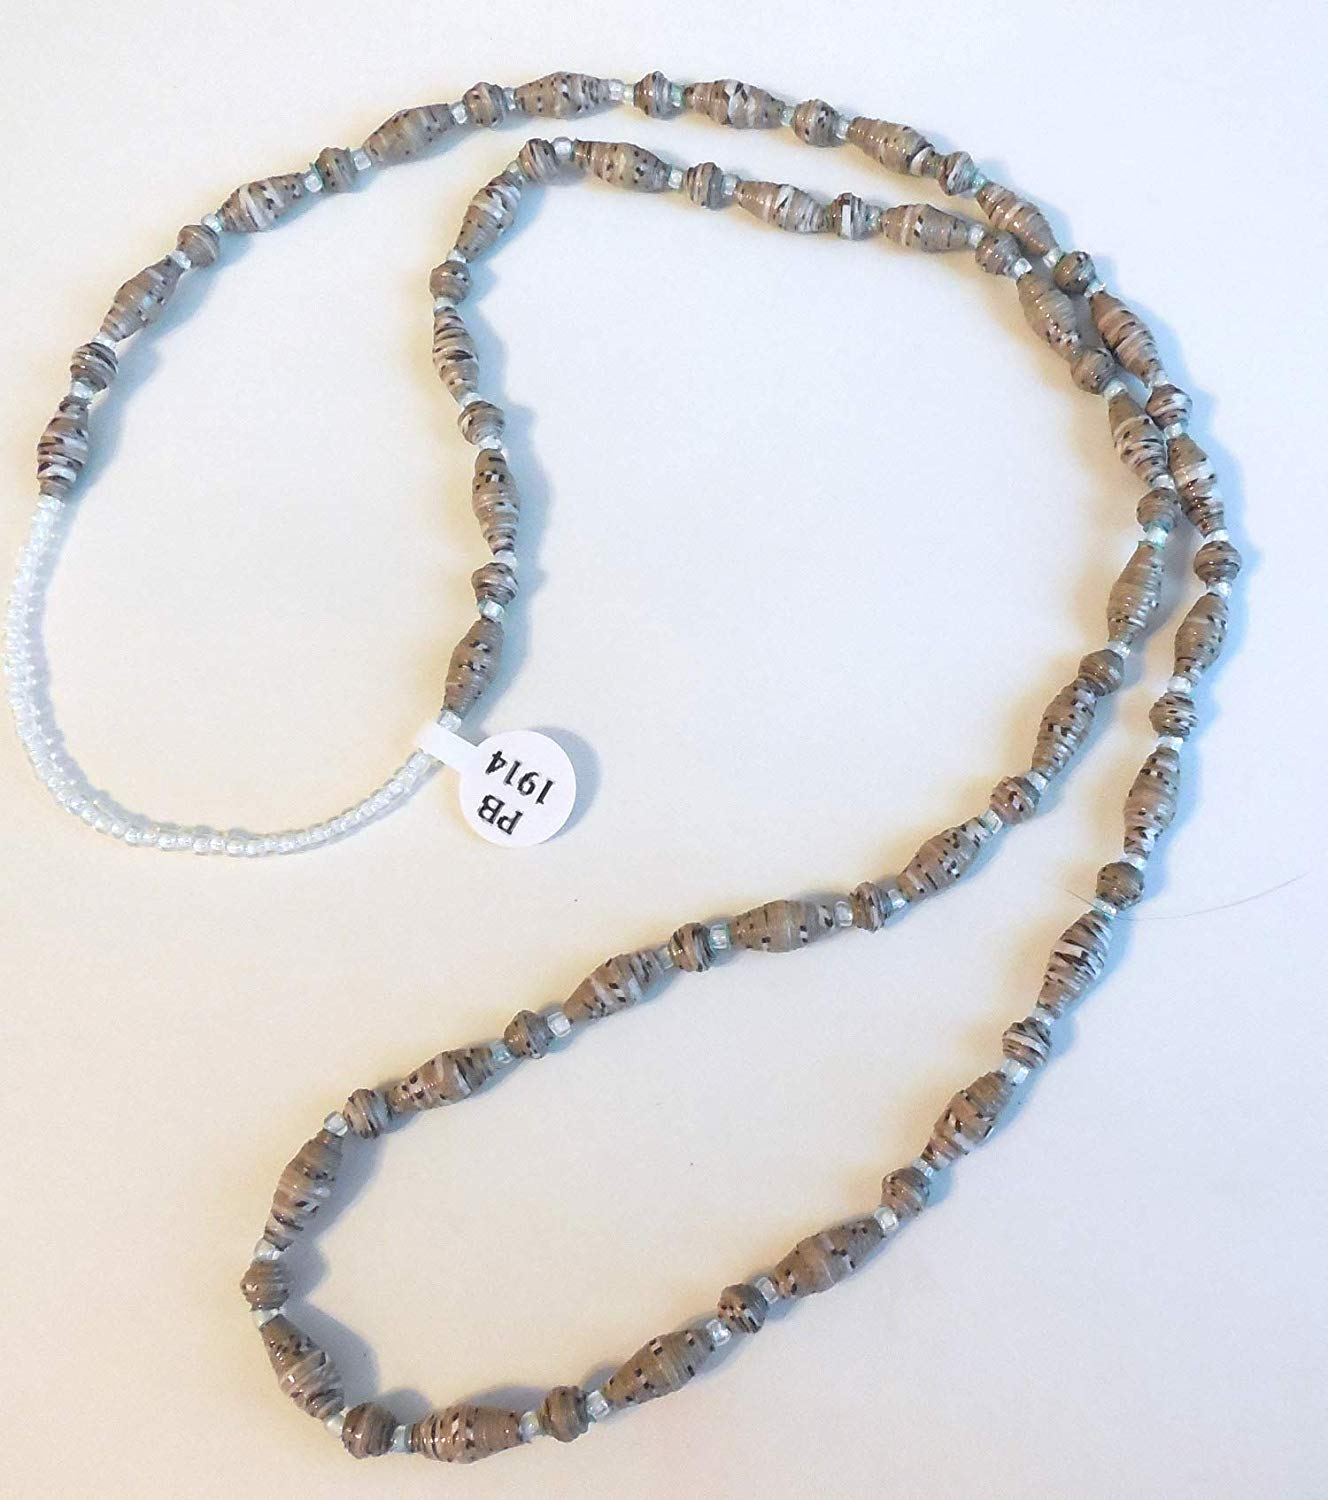 Paper Bead Necklace Handmade PB 1914